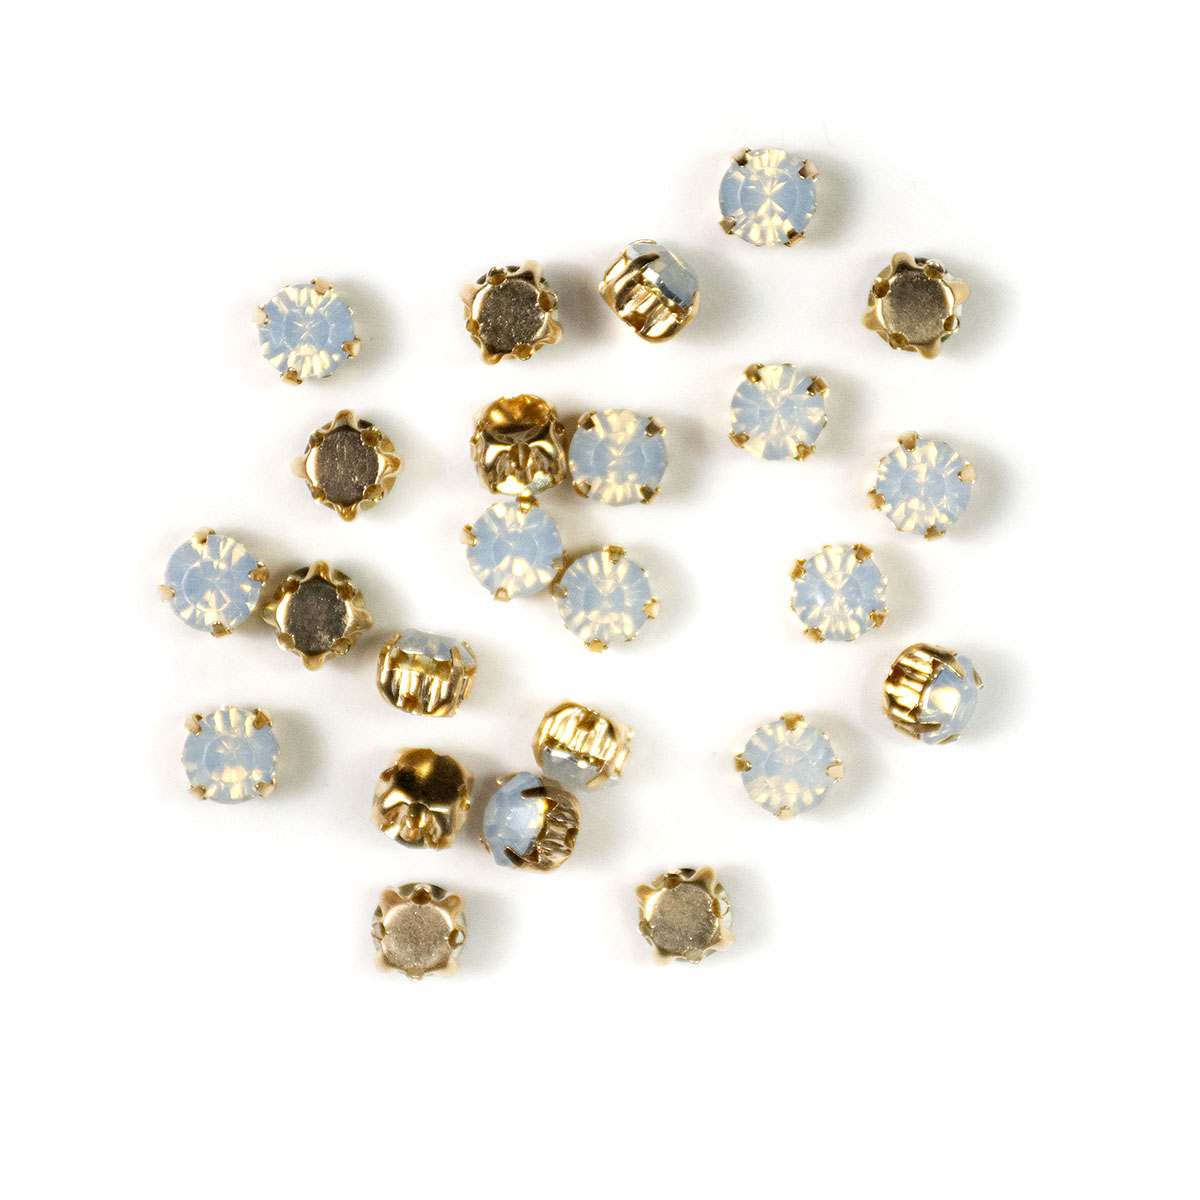 Rose Montee 6mm Opal in Gold Setting (24 pieces)